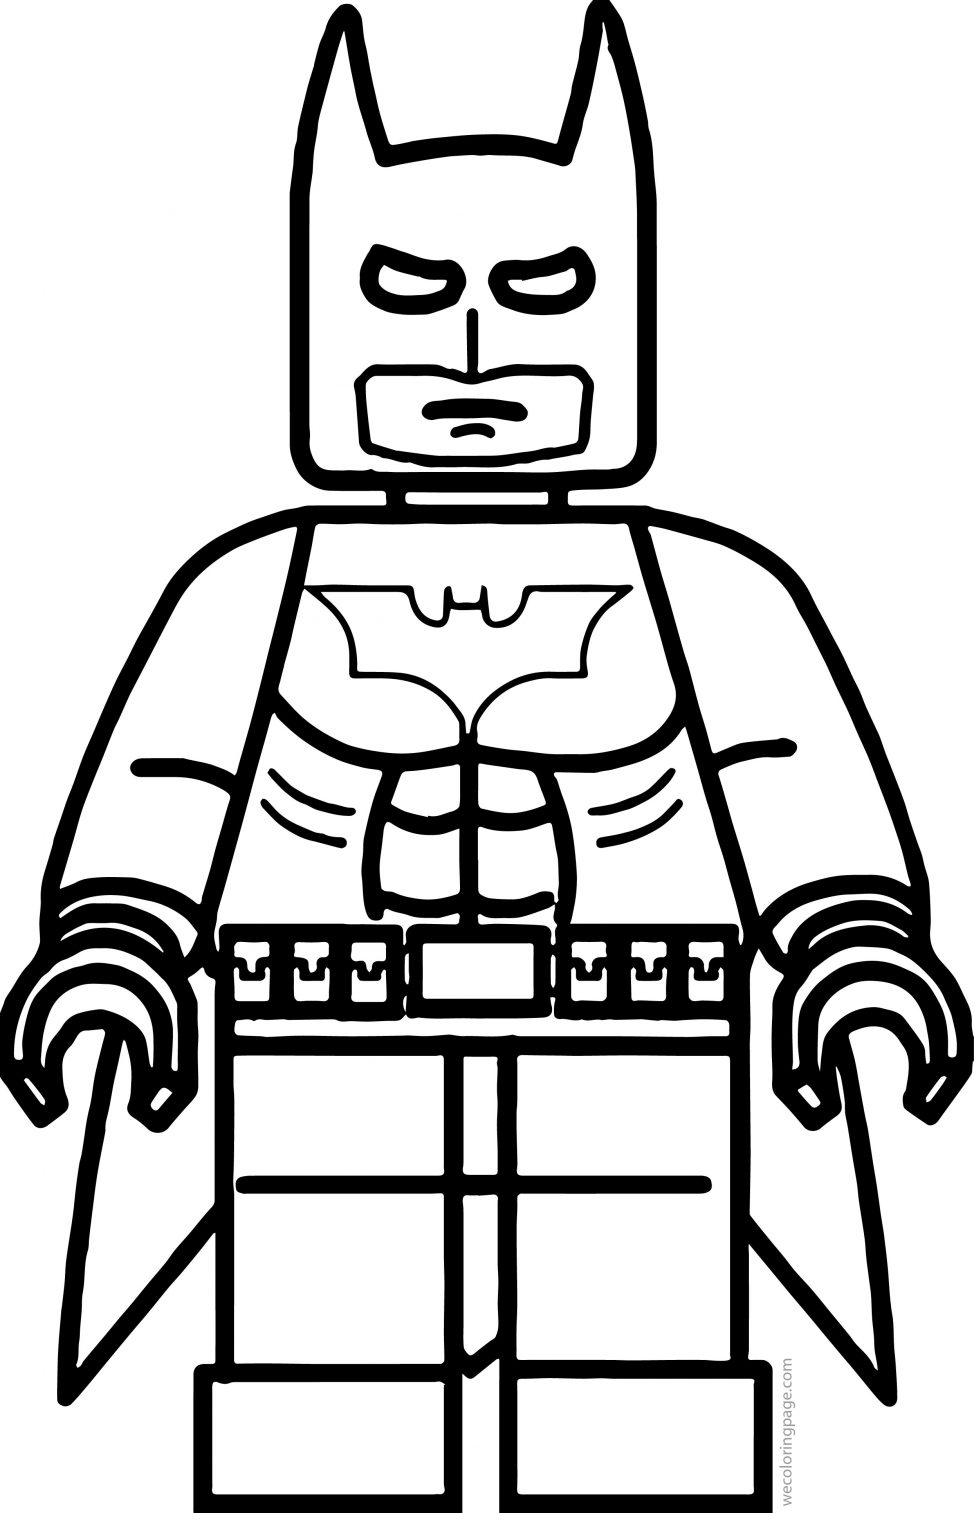 Batman Coloring Pages | Free download on ClipArtMag